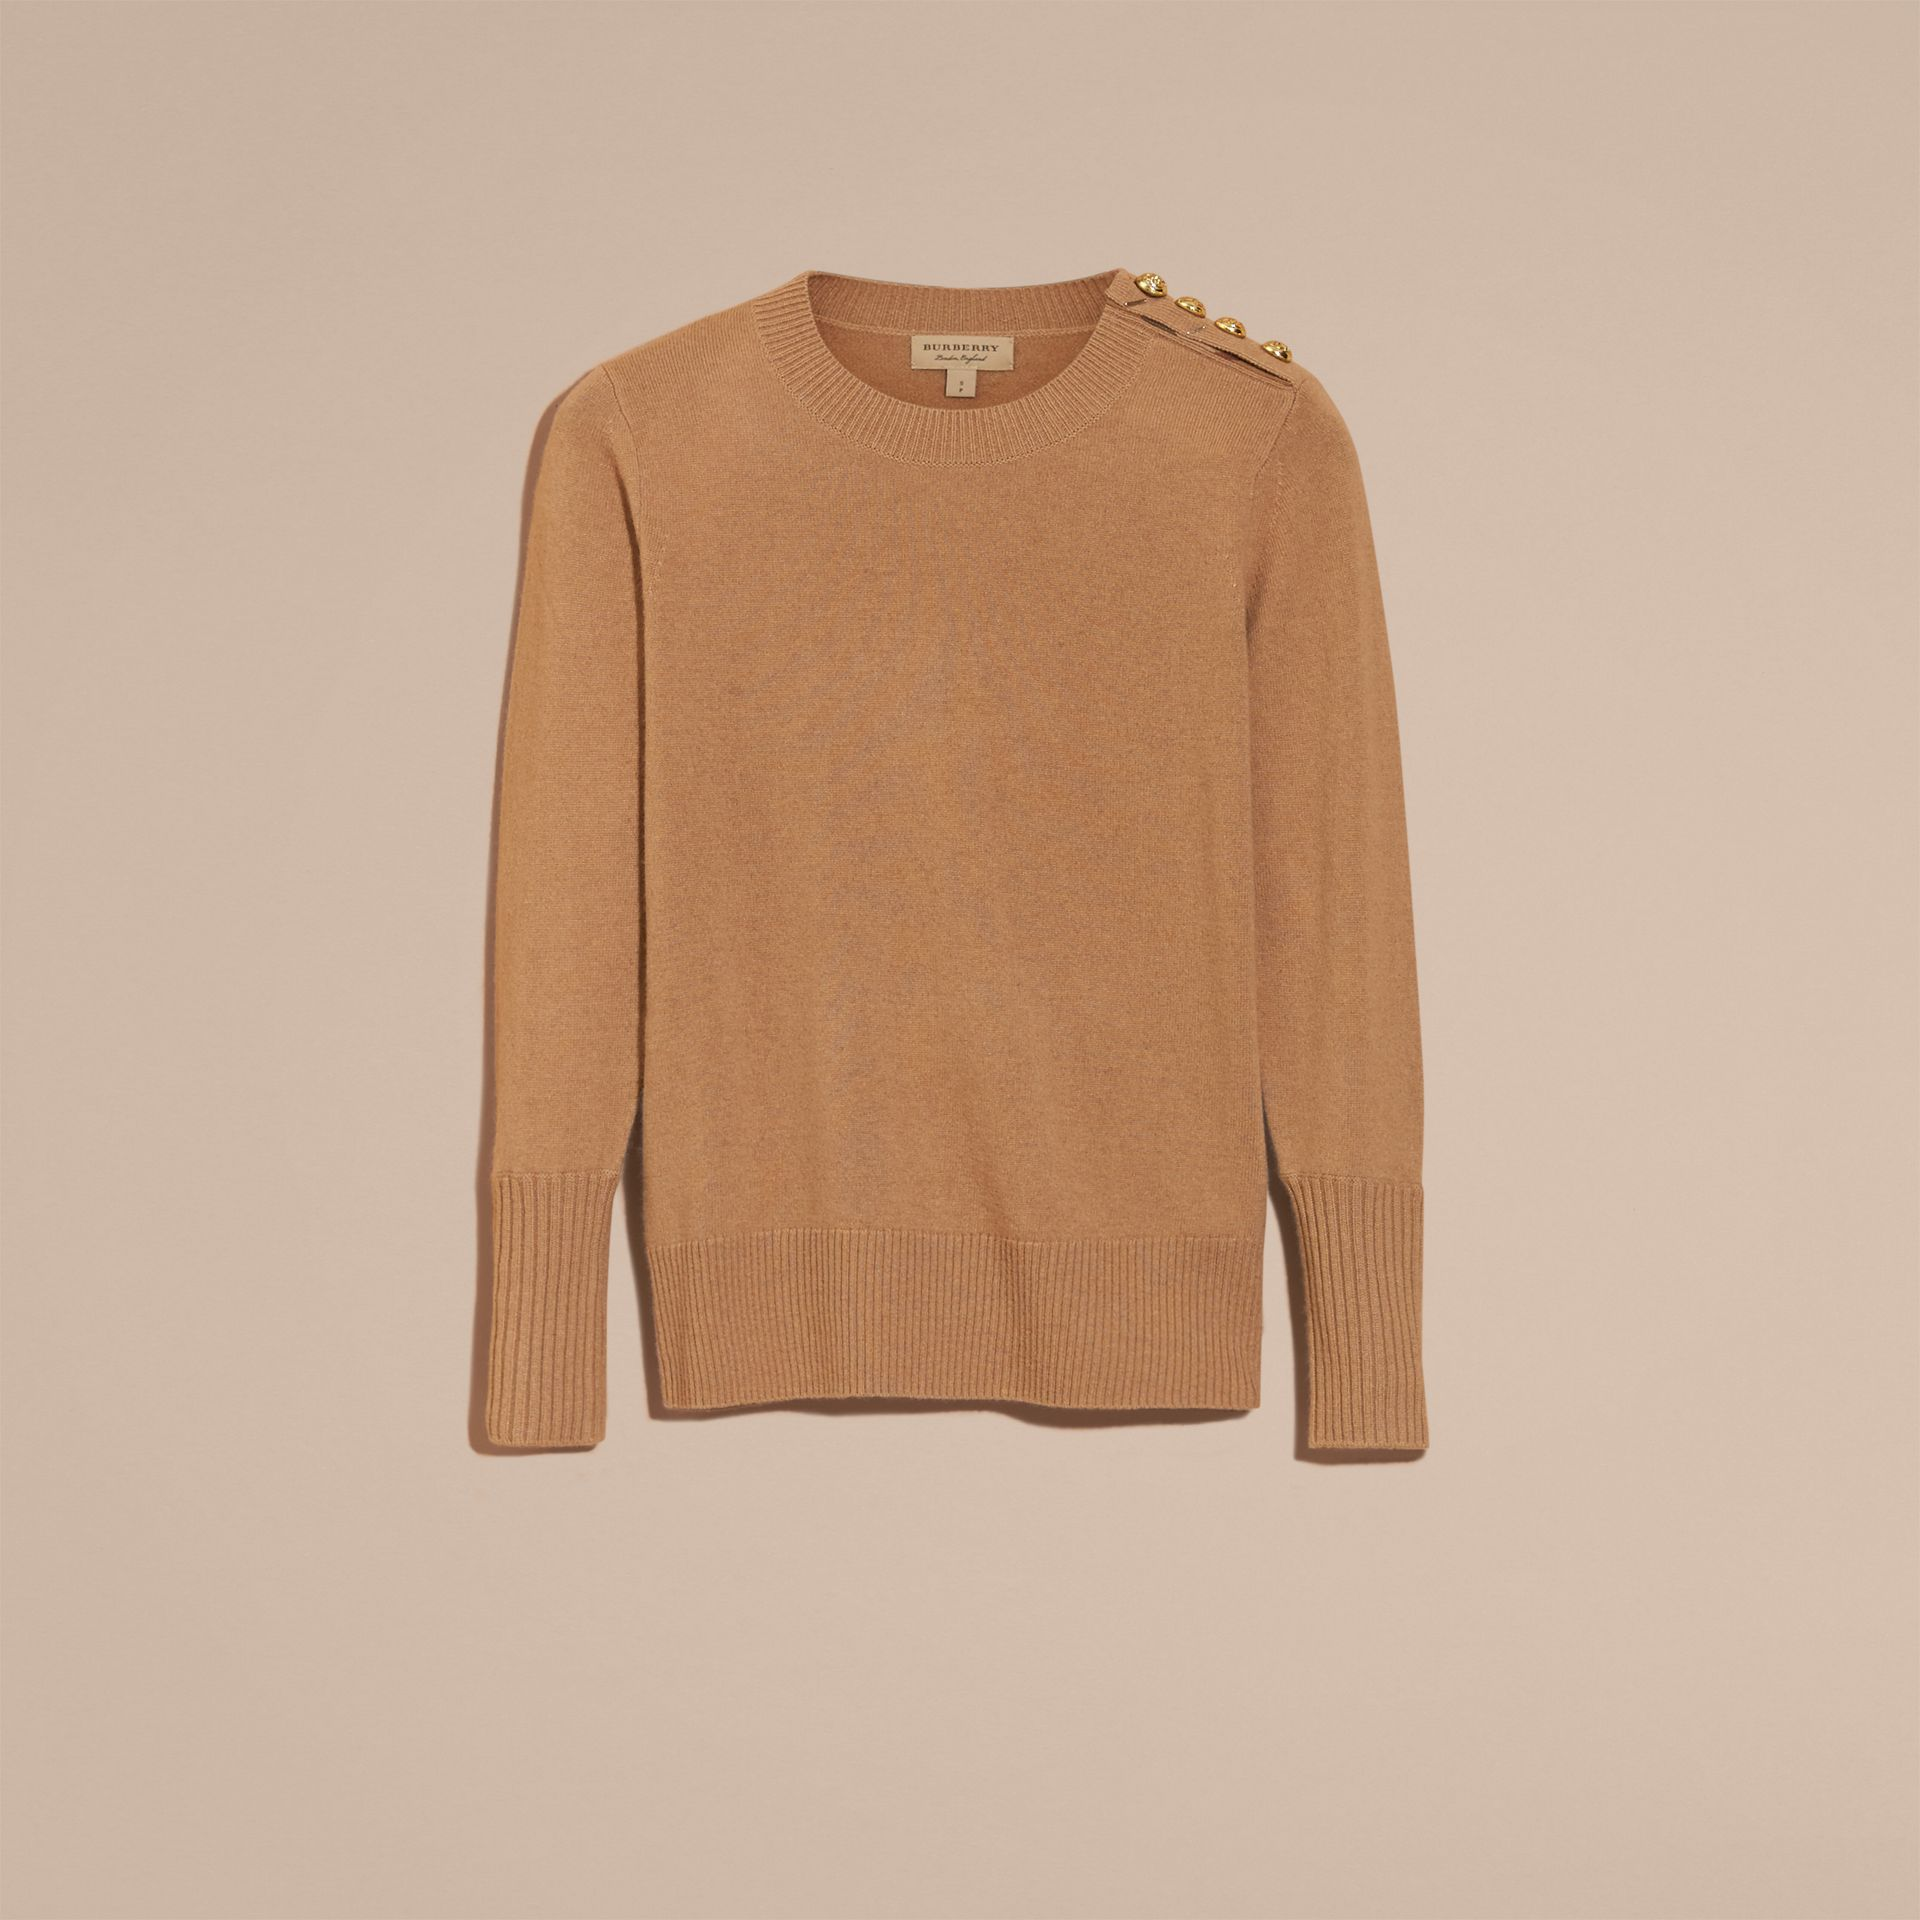 Camel Cashmere Sweater with Crested Buttons Camel - gallery image 4